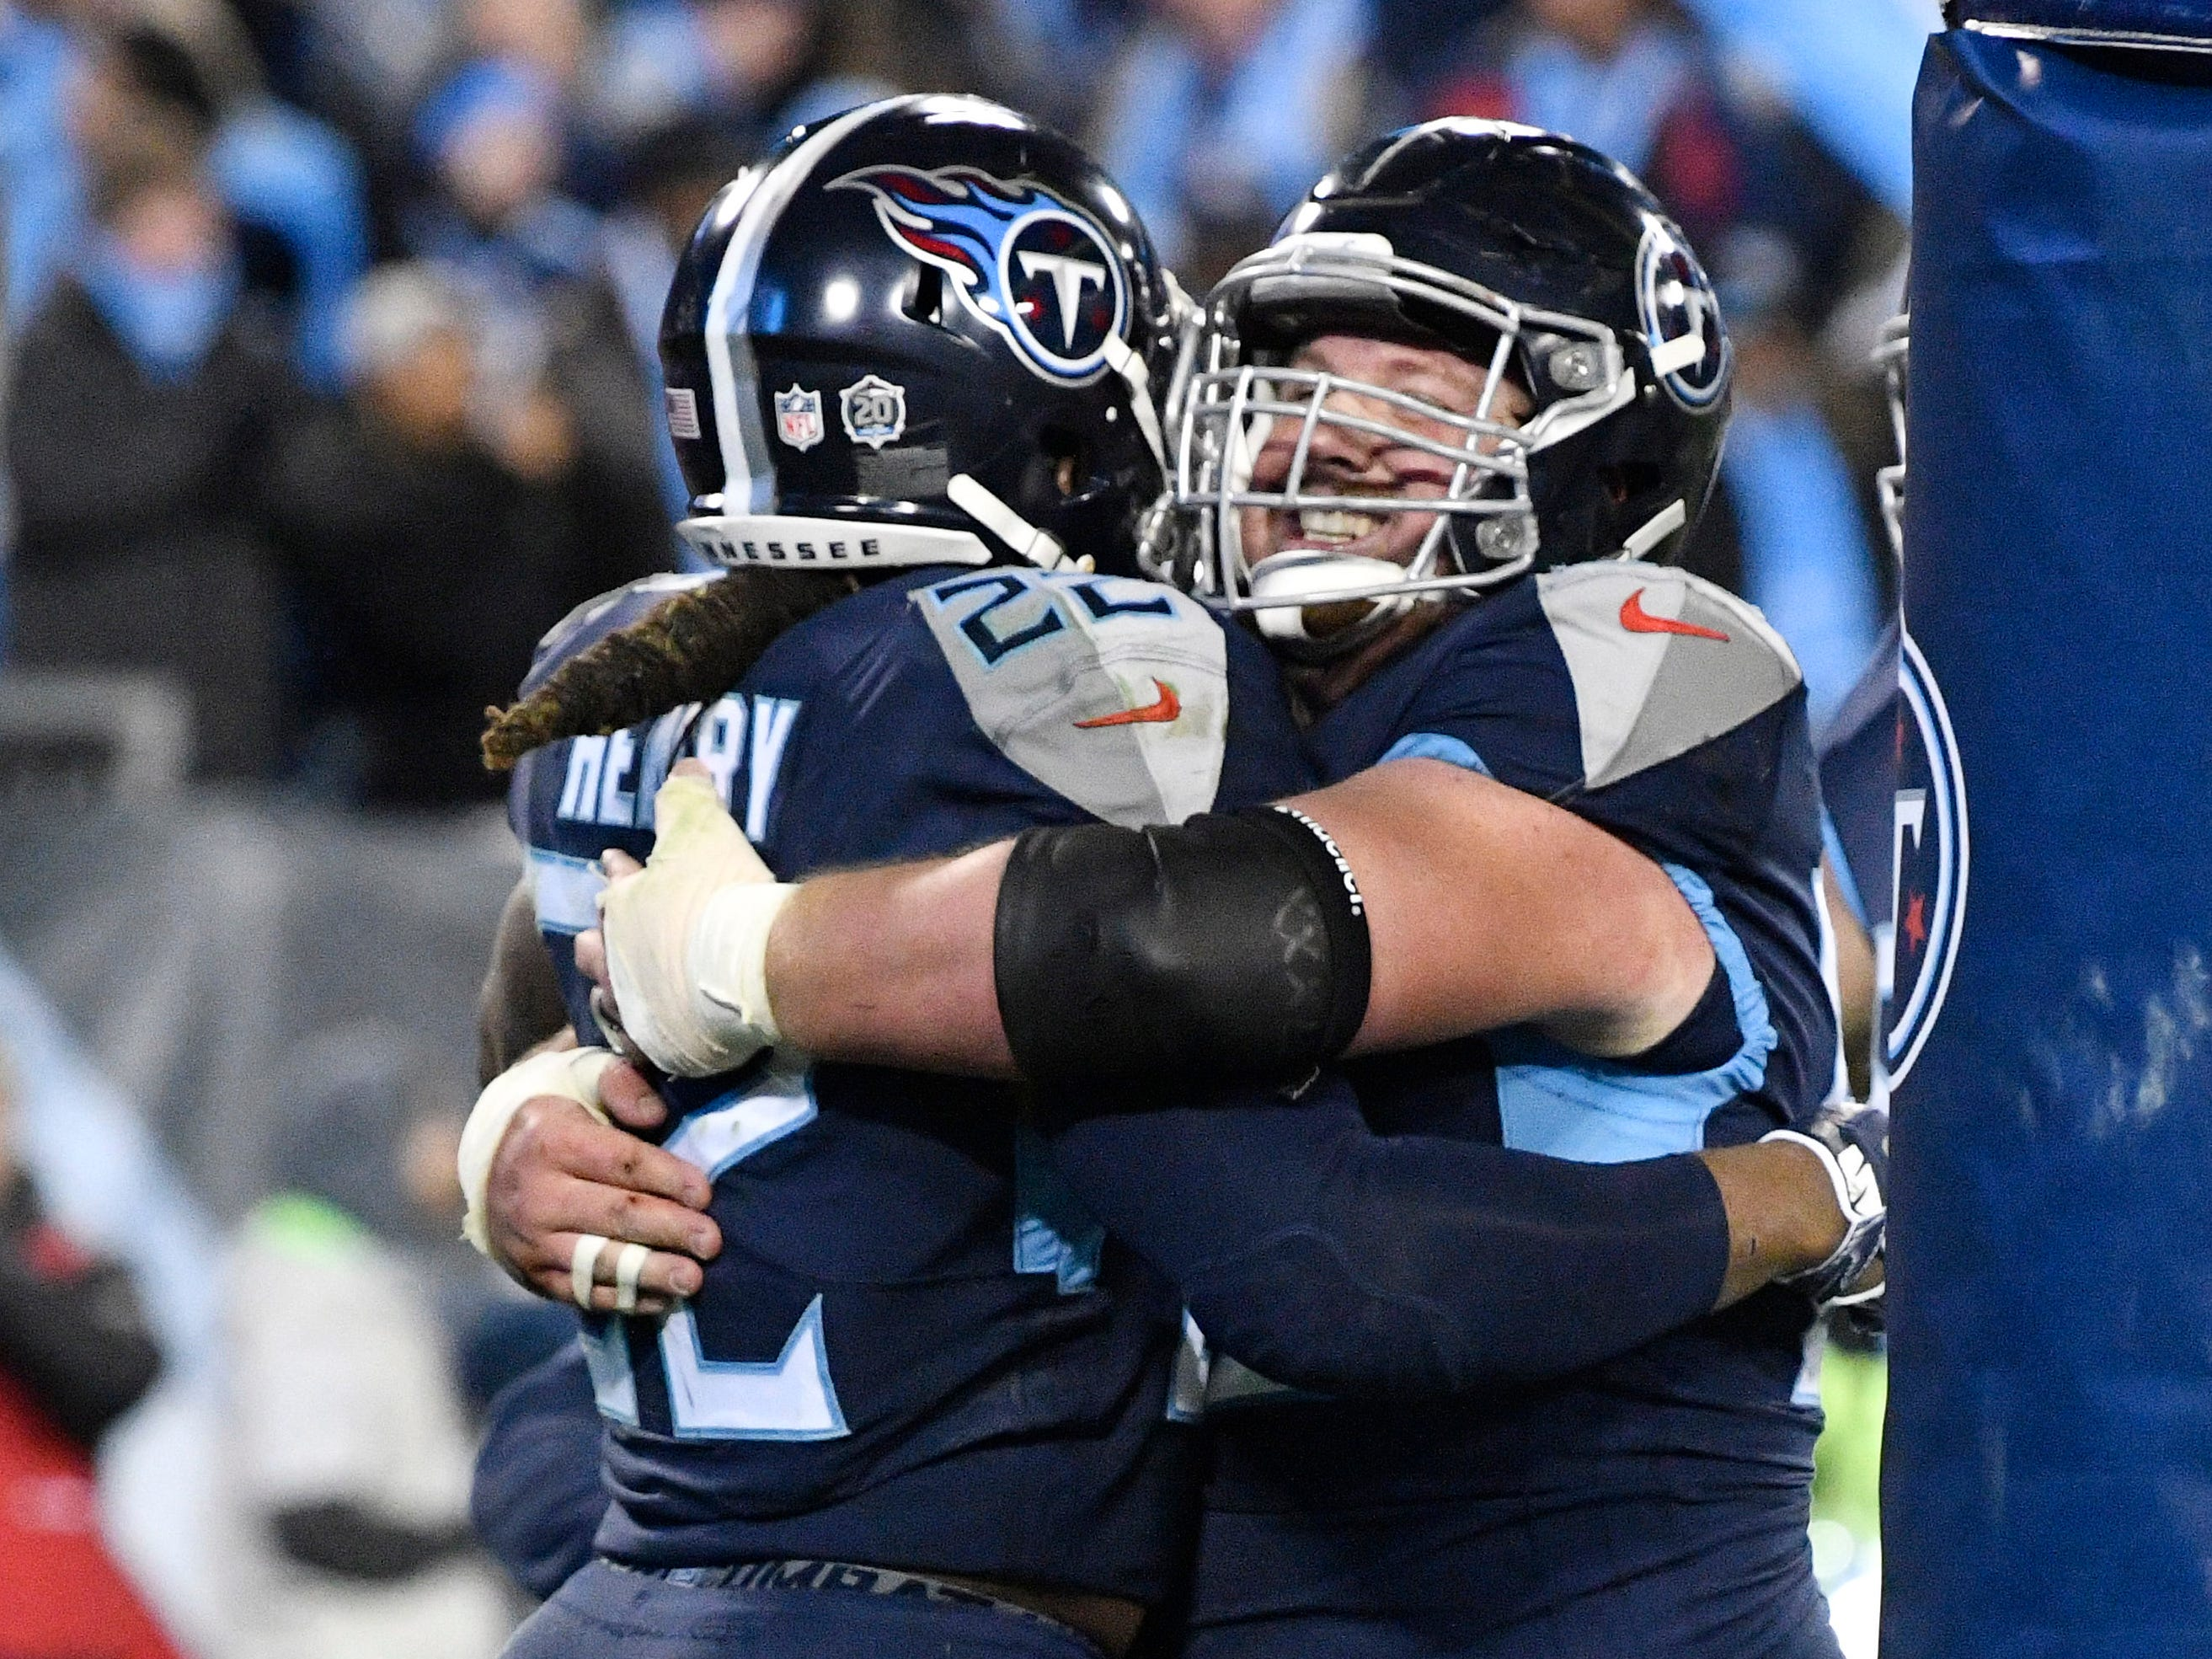 Titans running back Derrick Henry (22) celebrates his third touchdown with center Ben Jones (60) in the third quarter at Nissan Stadium Thursday, Dec. 6, 2018, in Nashville, Tenn.